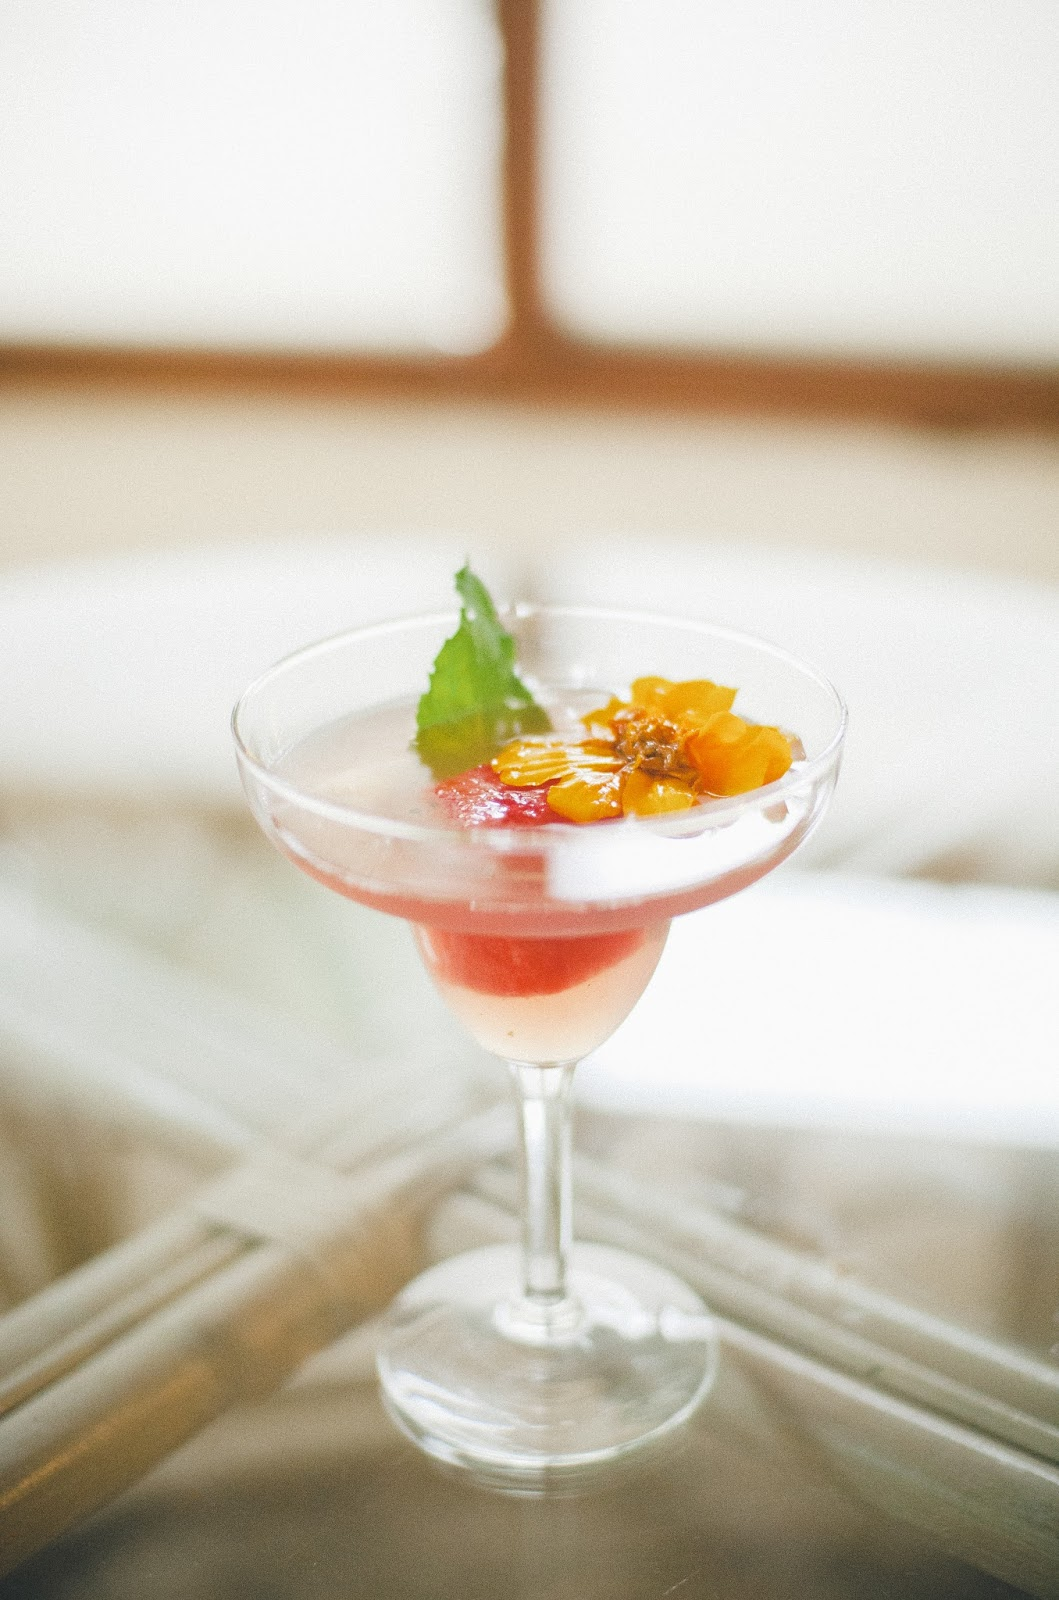 Lillet, St. Germain, Cocktail, Basil, Mint, Watermelon